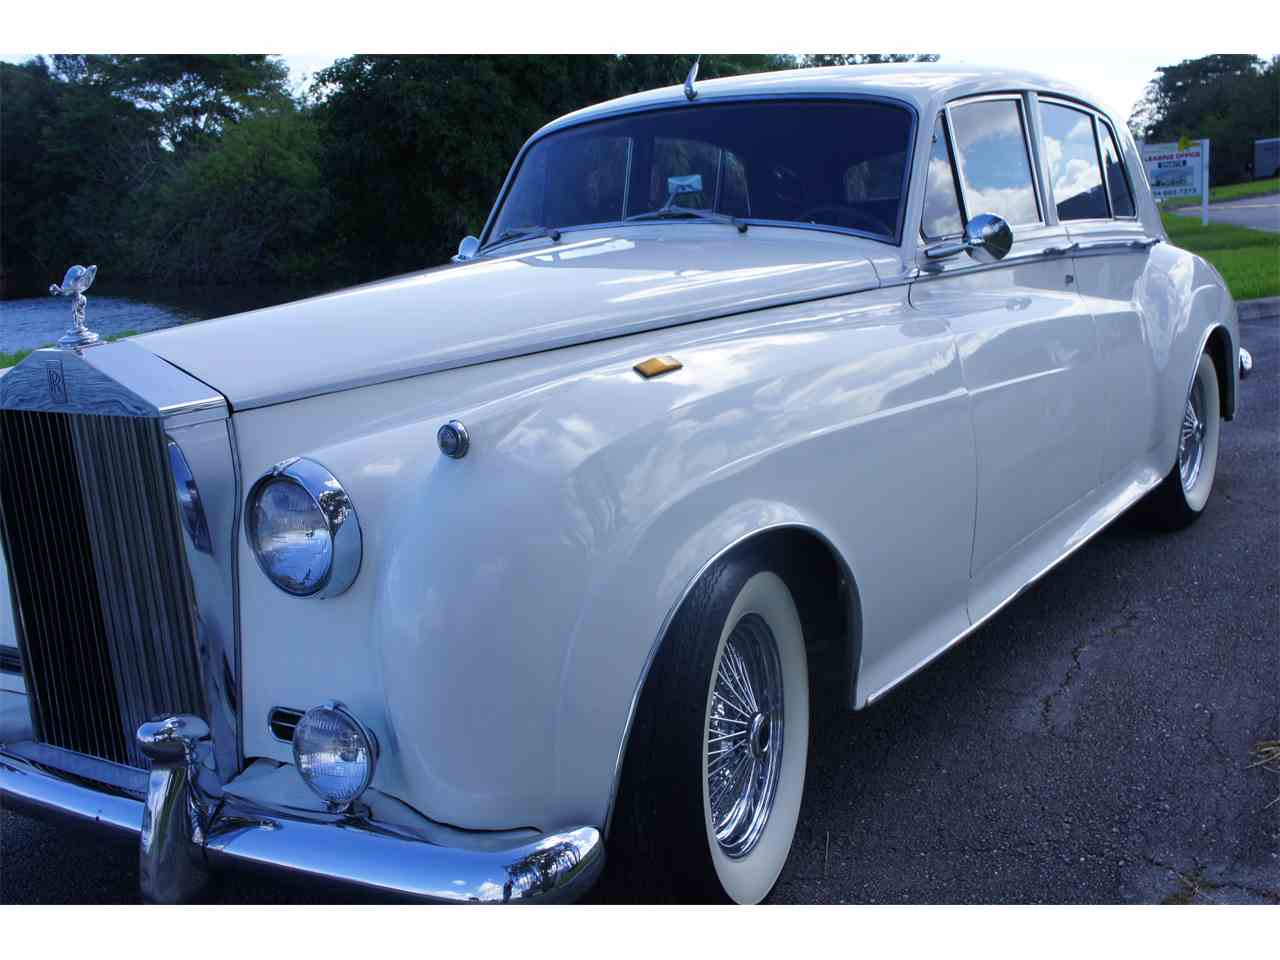 Large Picture of Classic 1961 Rolls Royce Silver Cloud II - $39,995.00 Offered by a Private Seller - H723